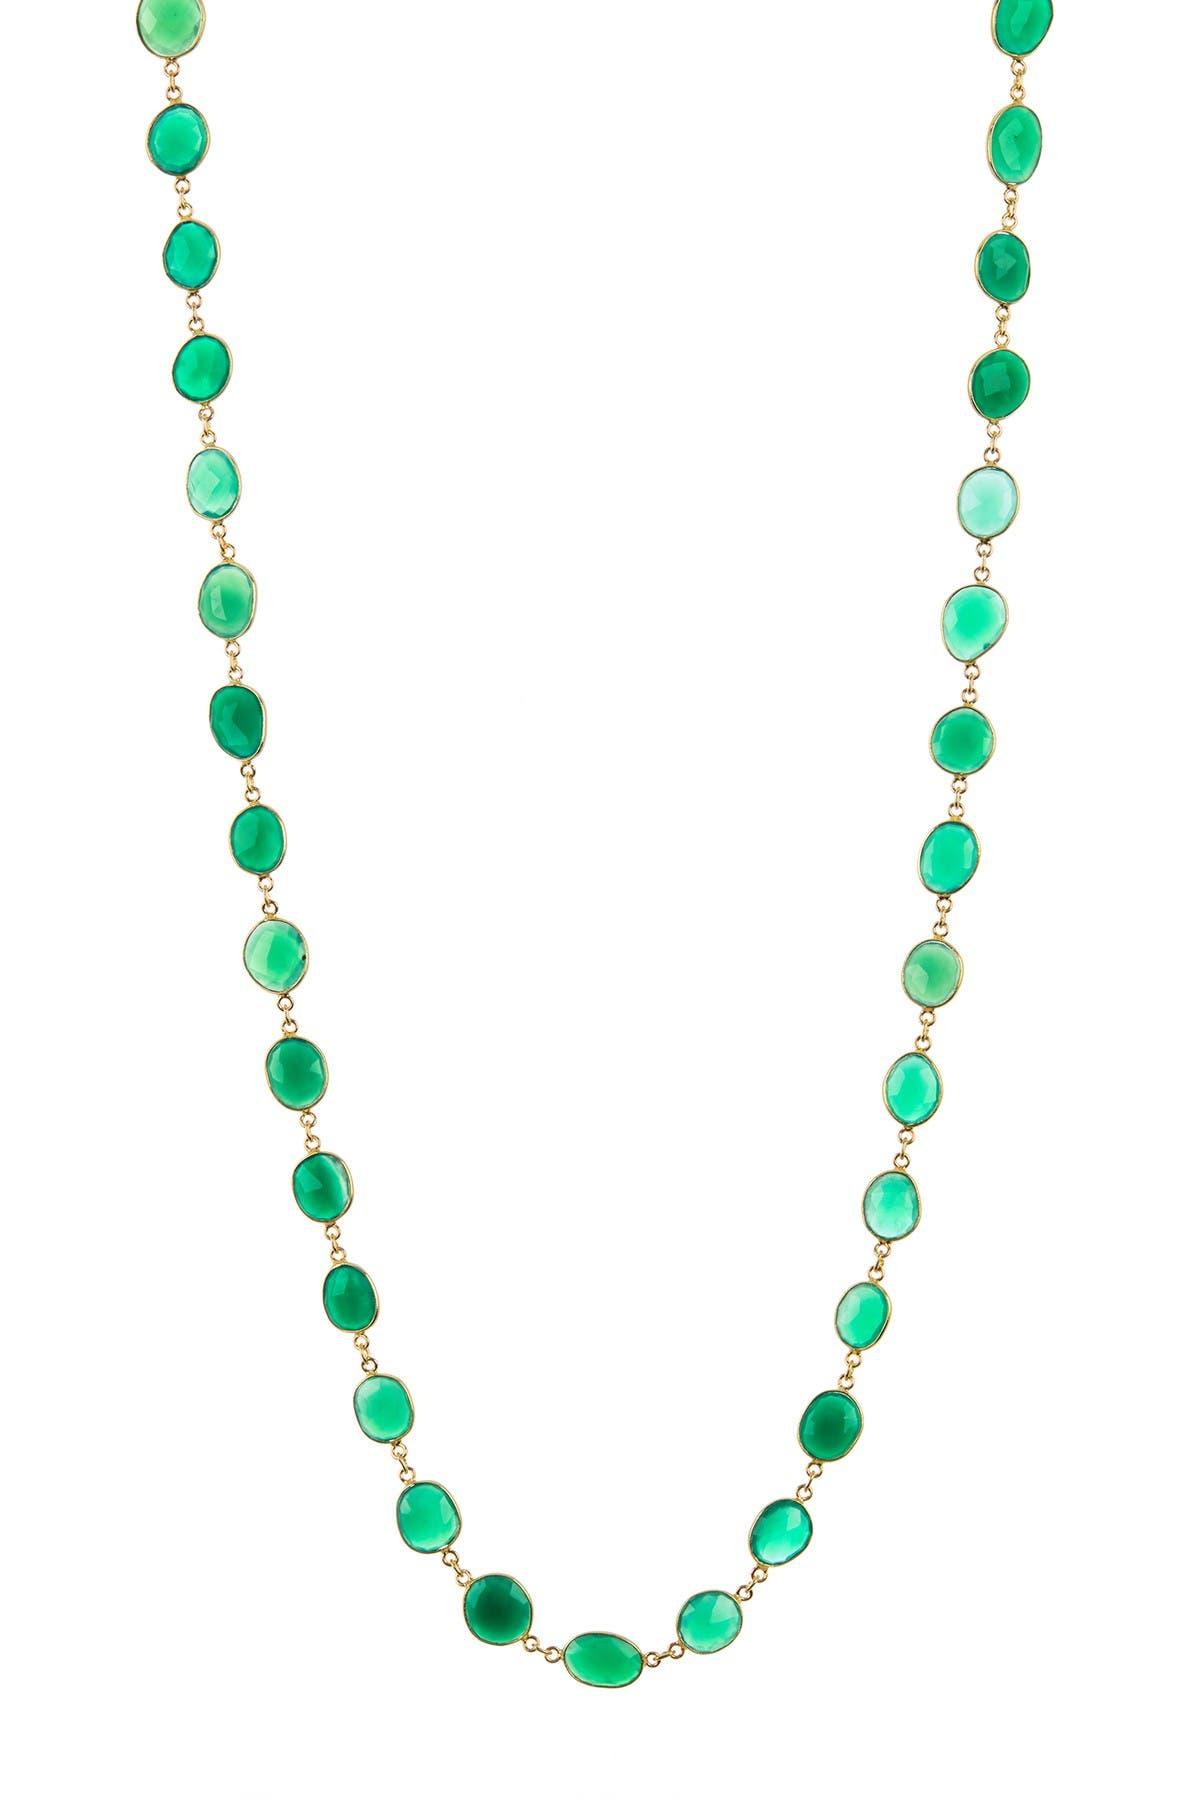 Image of Forever Creations USA Inc. 18K Gold Vermeil Emerald Long Necklace